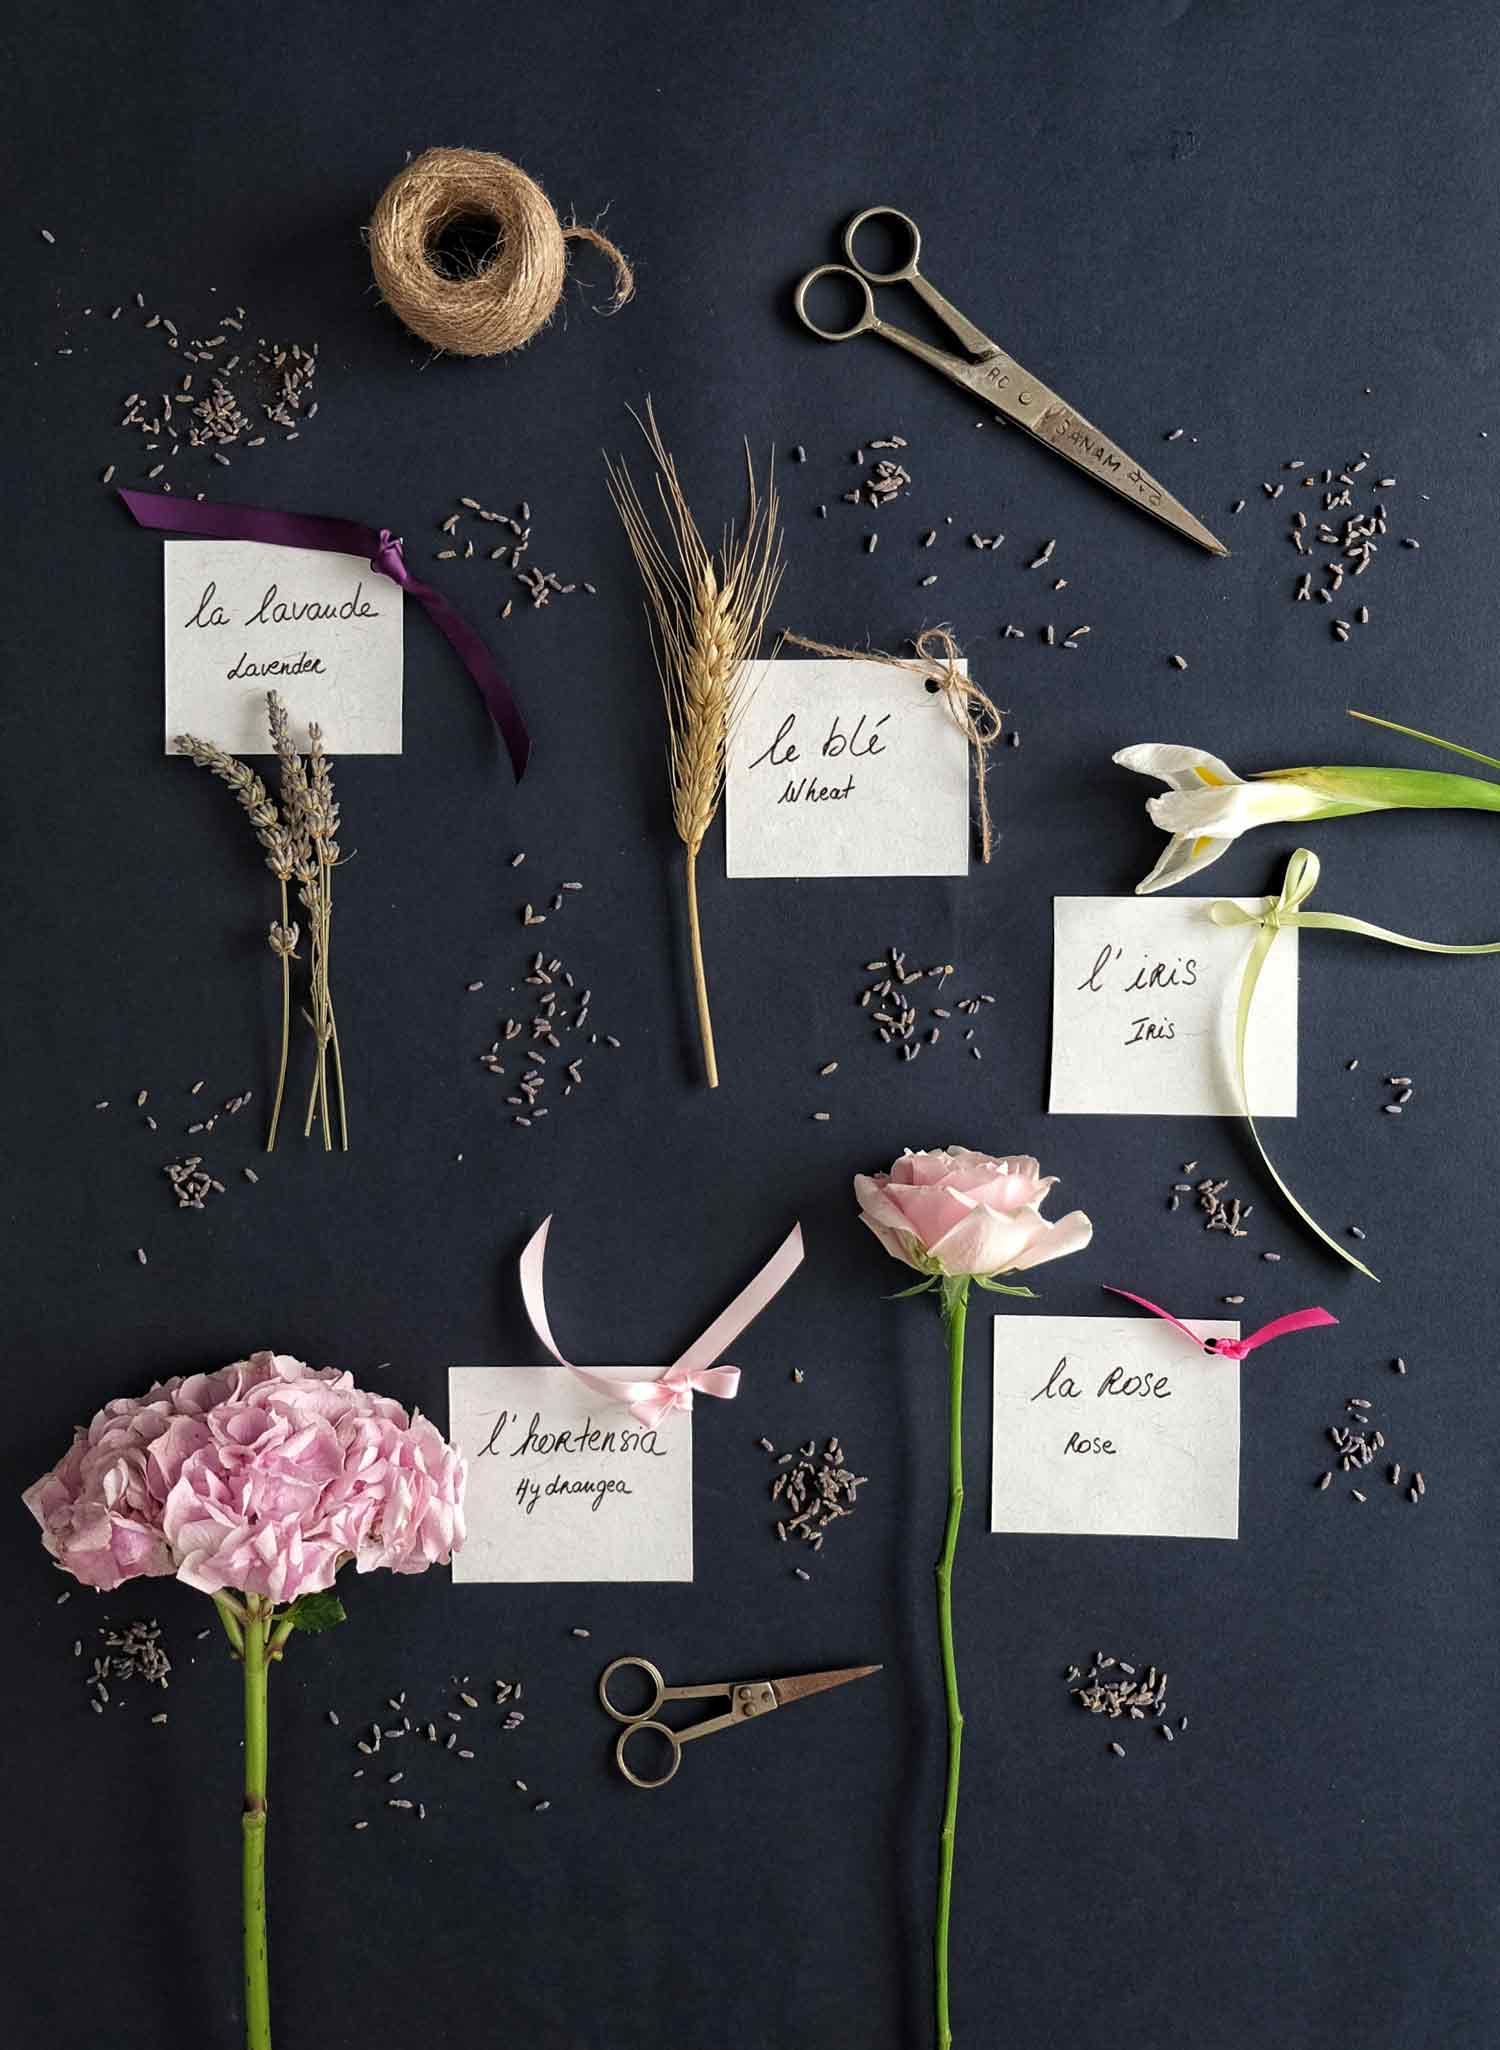 workshop showing the different names of flowers, with hydrangea, roses, iris, wheat and lavender